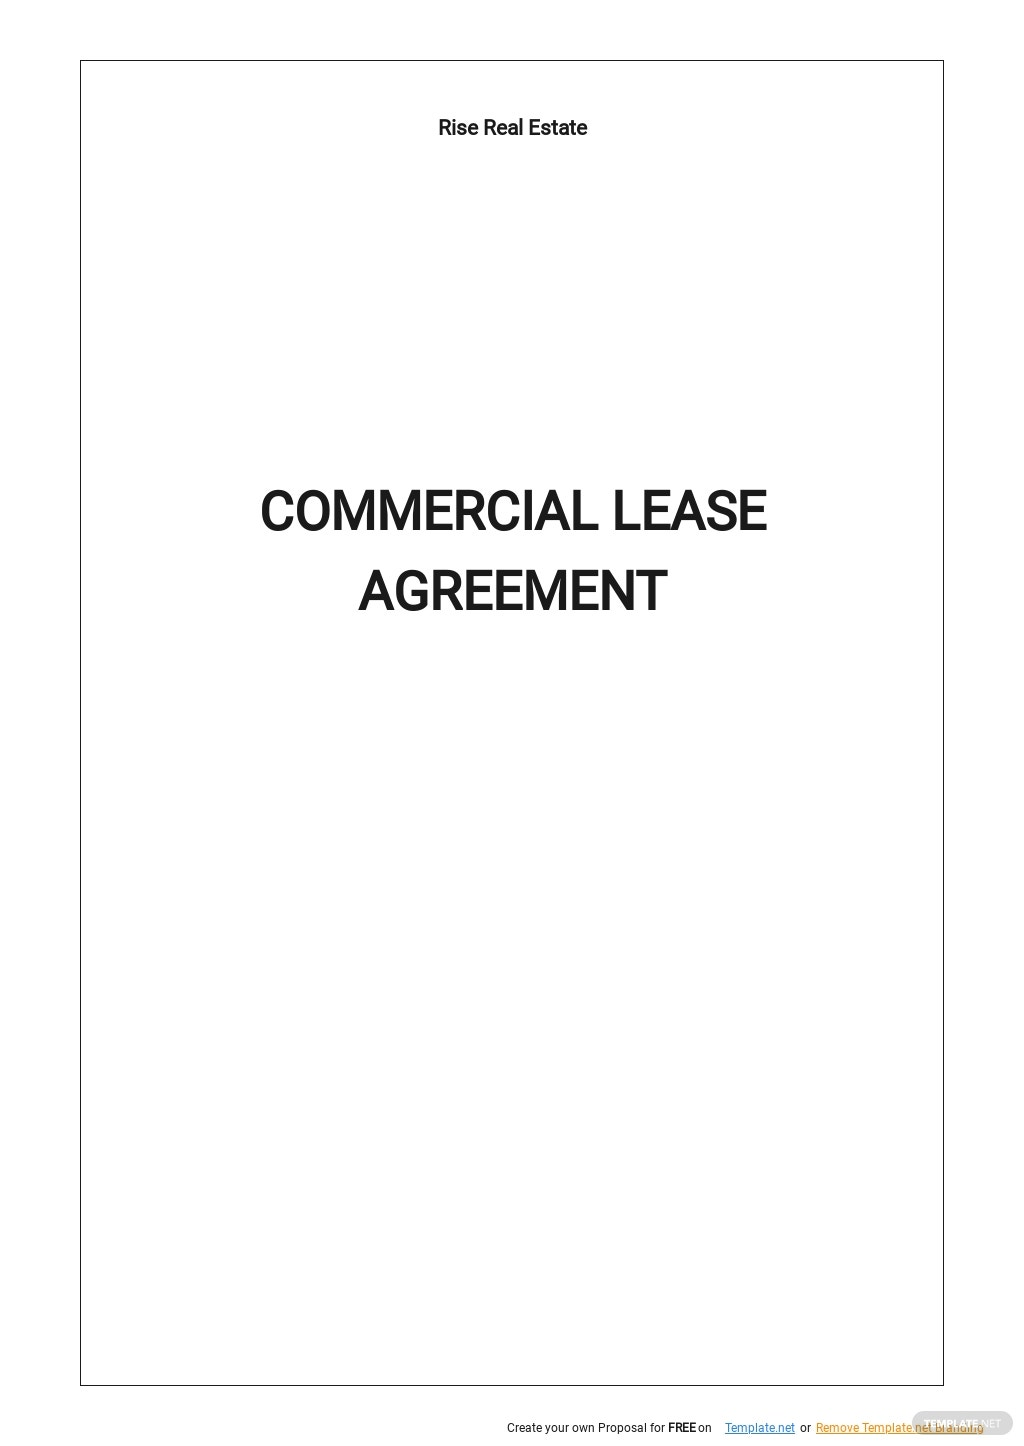 Commercial Lease Agreement Template.jpe